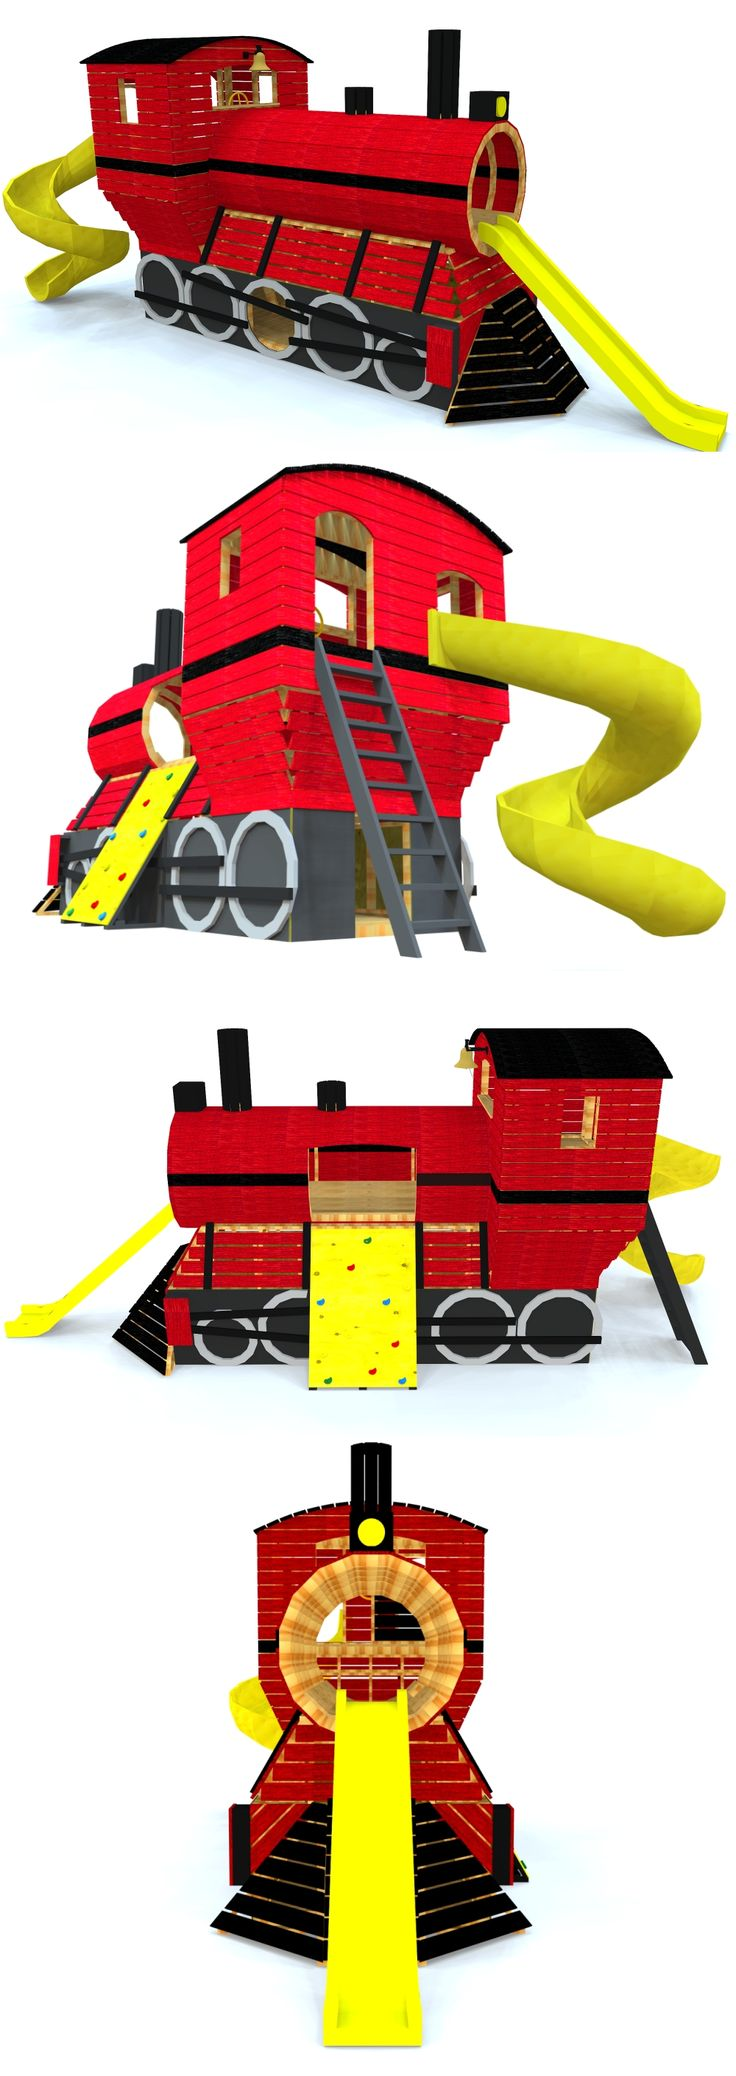 "The ""Train"" playhouse plan located on paulsplayhouses.com.  Perfect for little boys who love old steam engines!"